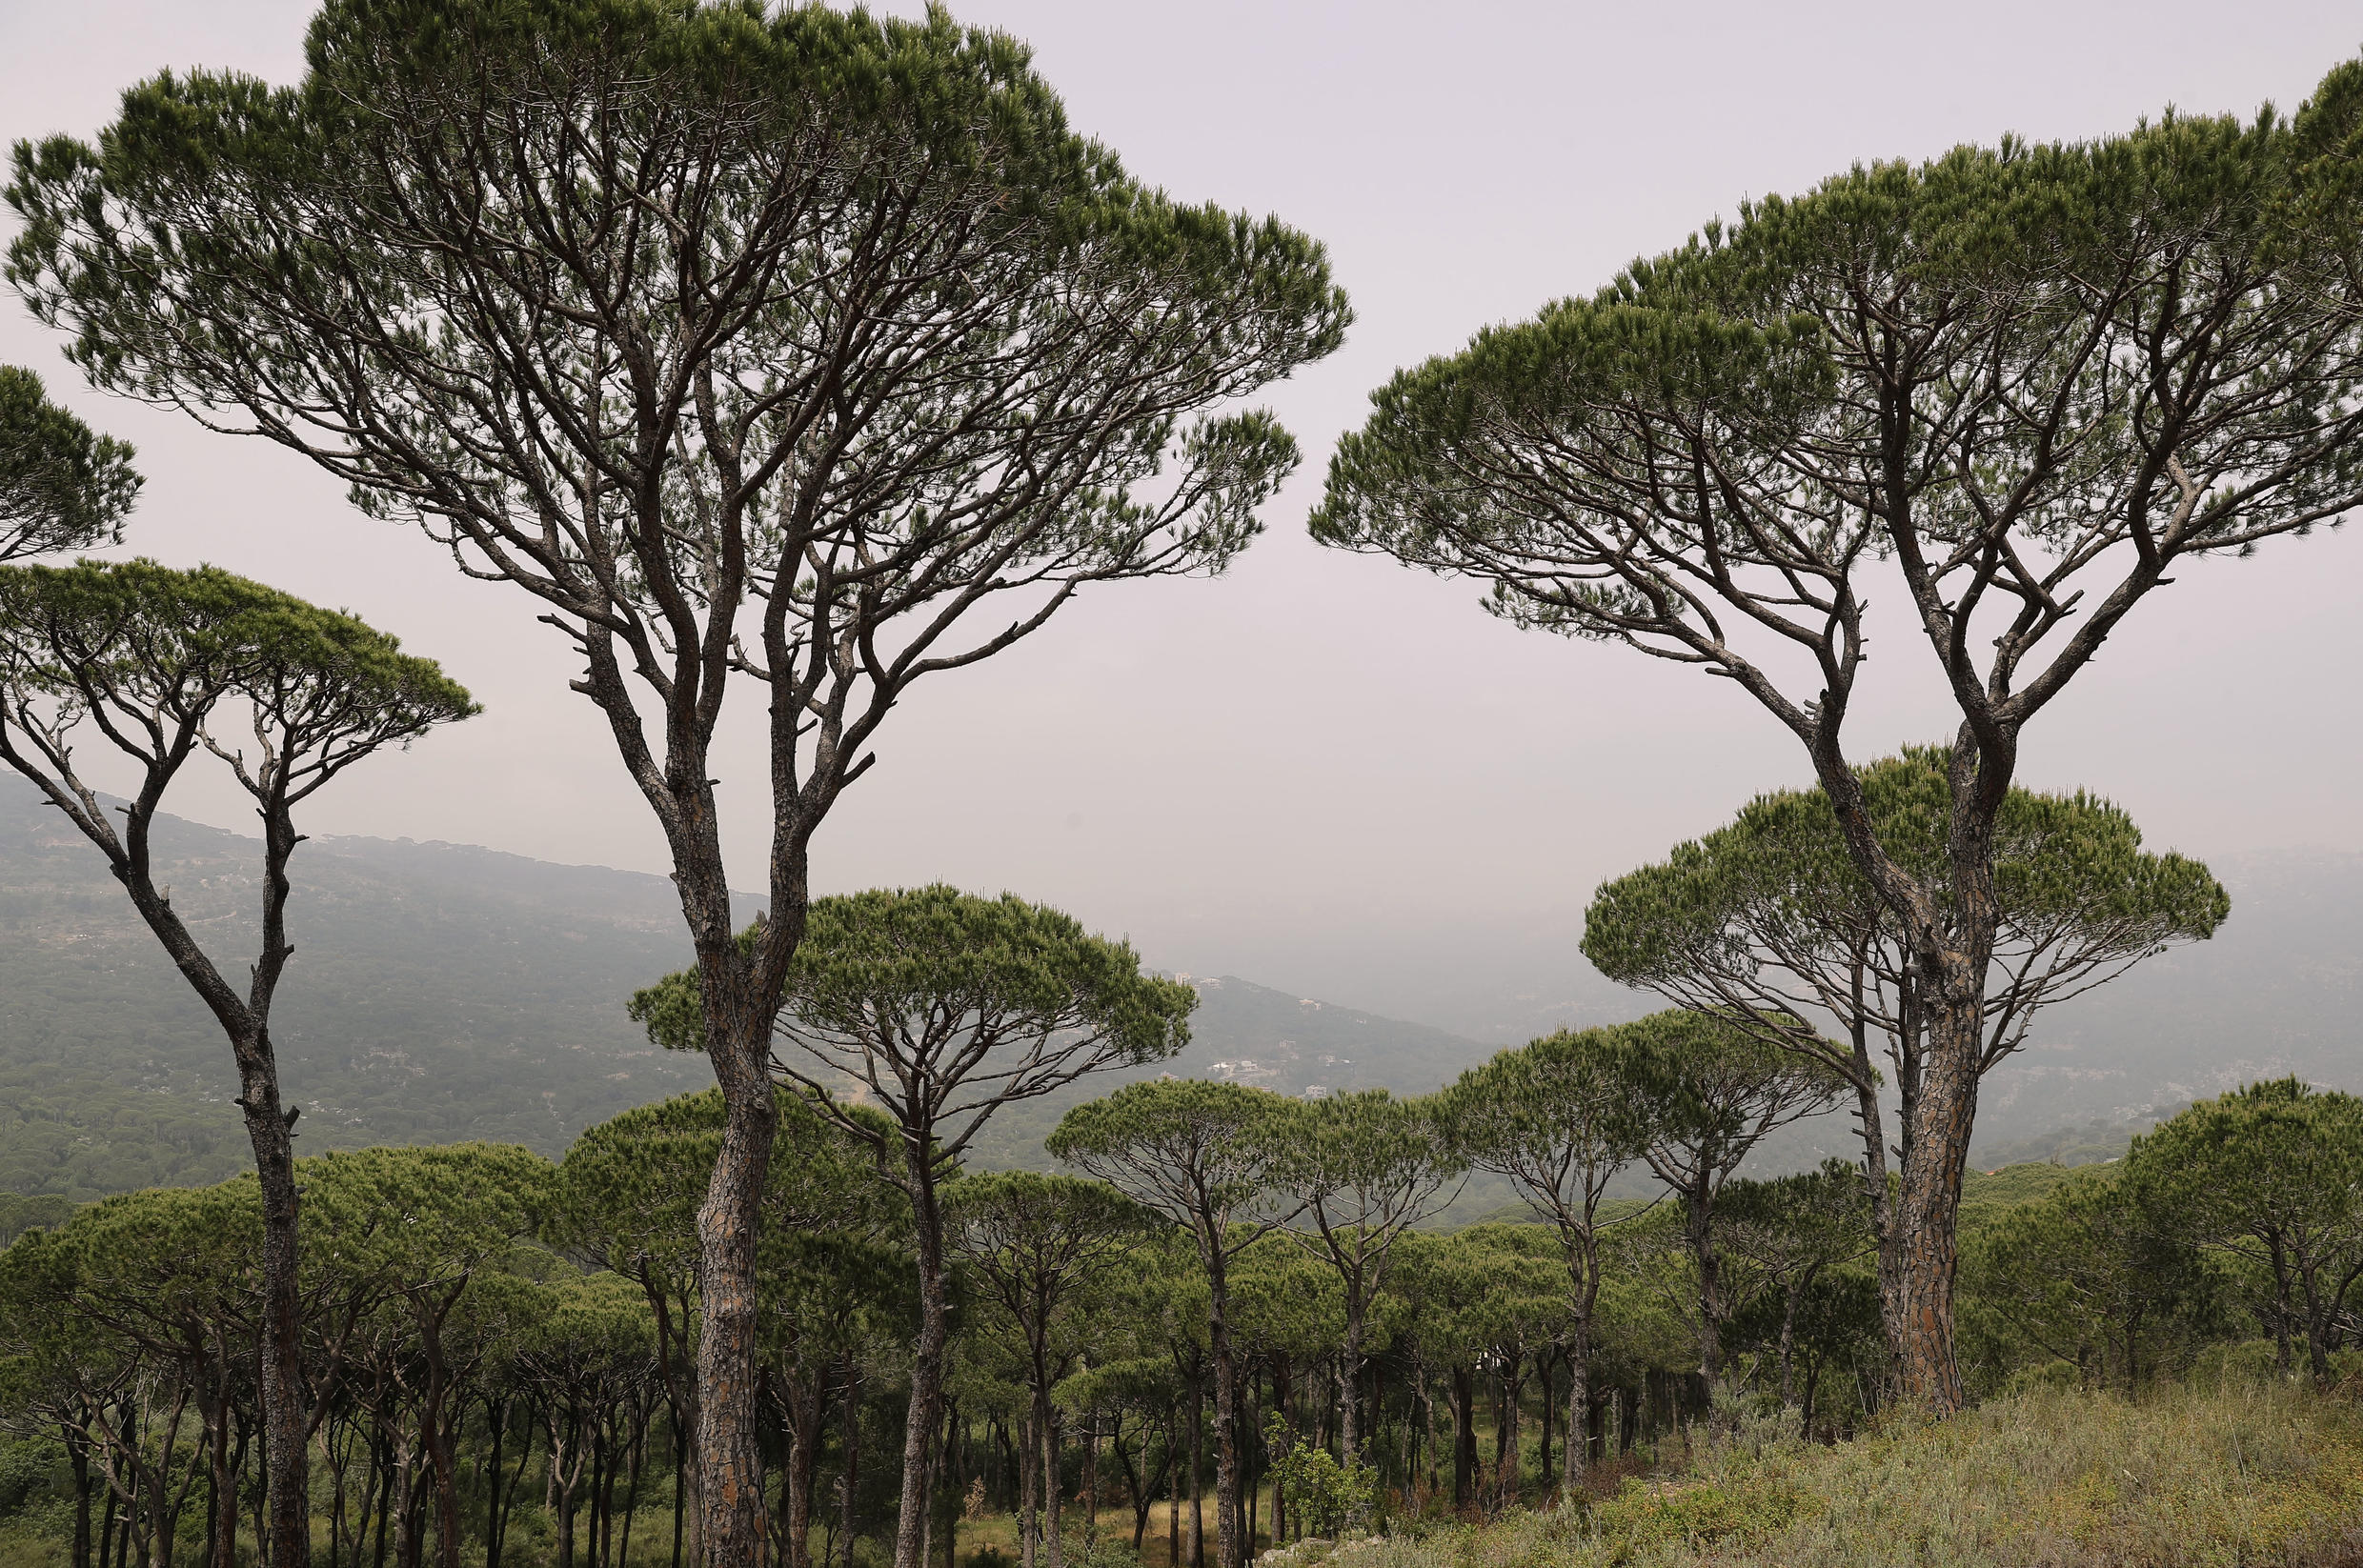 The Qsaybeh pine forest east of Beirut